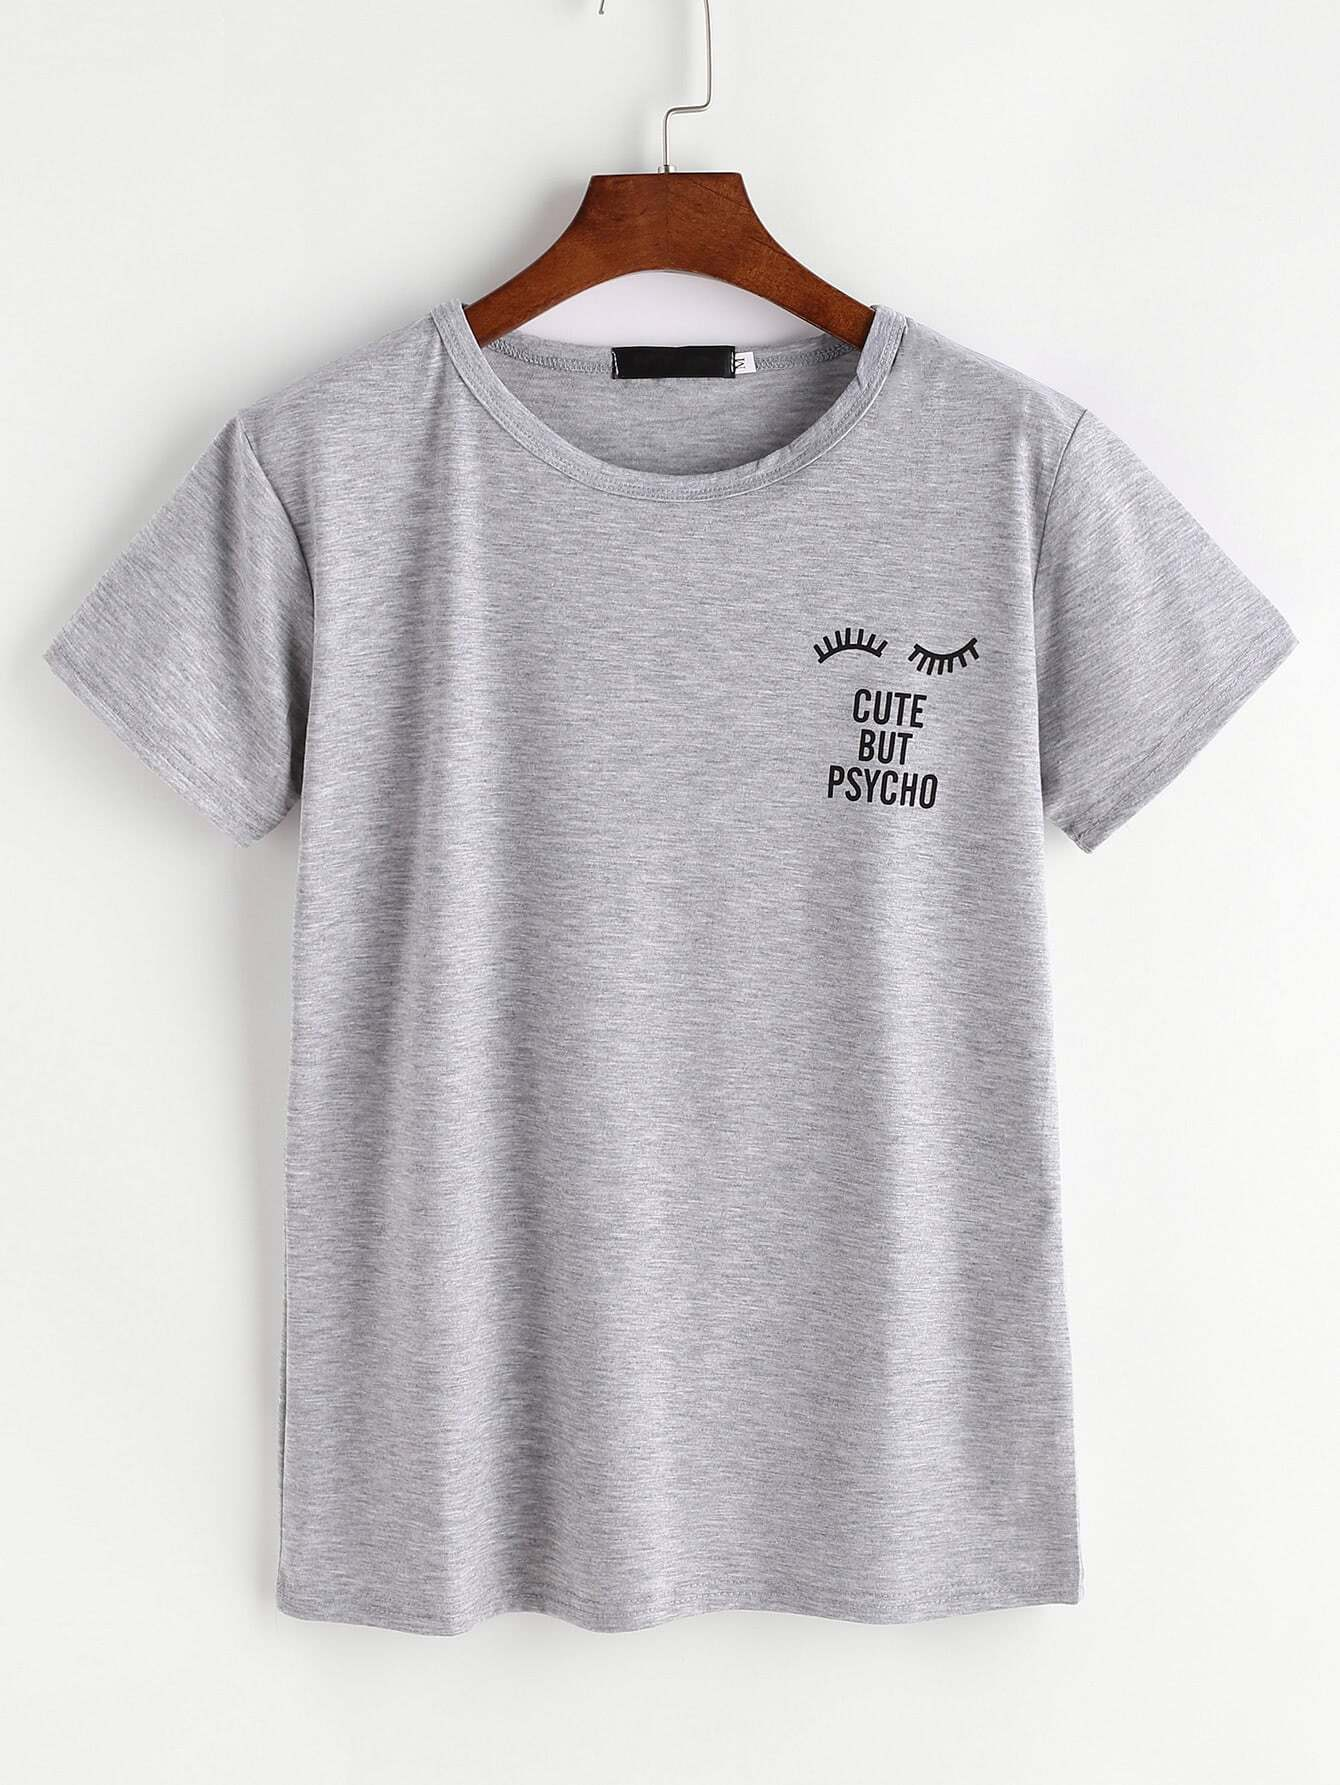 Grey Eyelashes And Letter Print T-shirt grey eyelashes and letter print t shirt